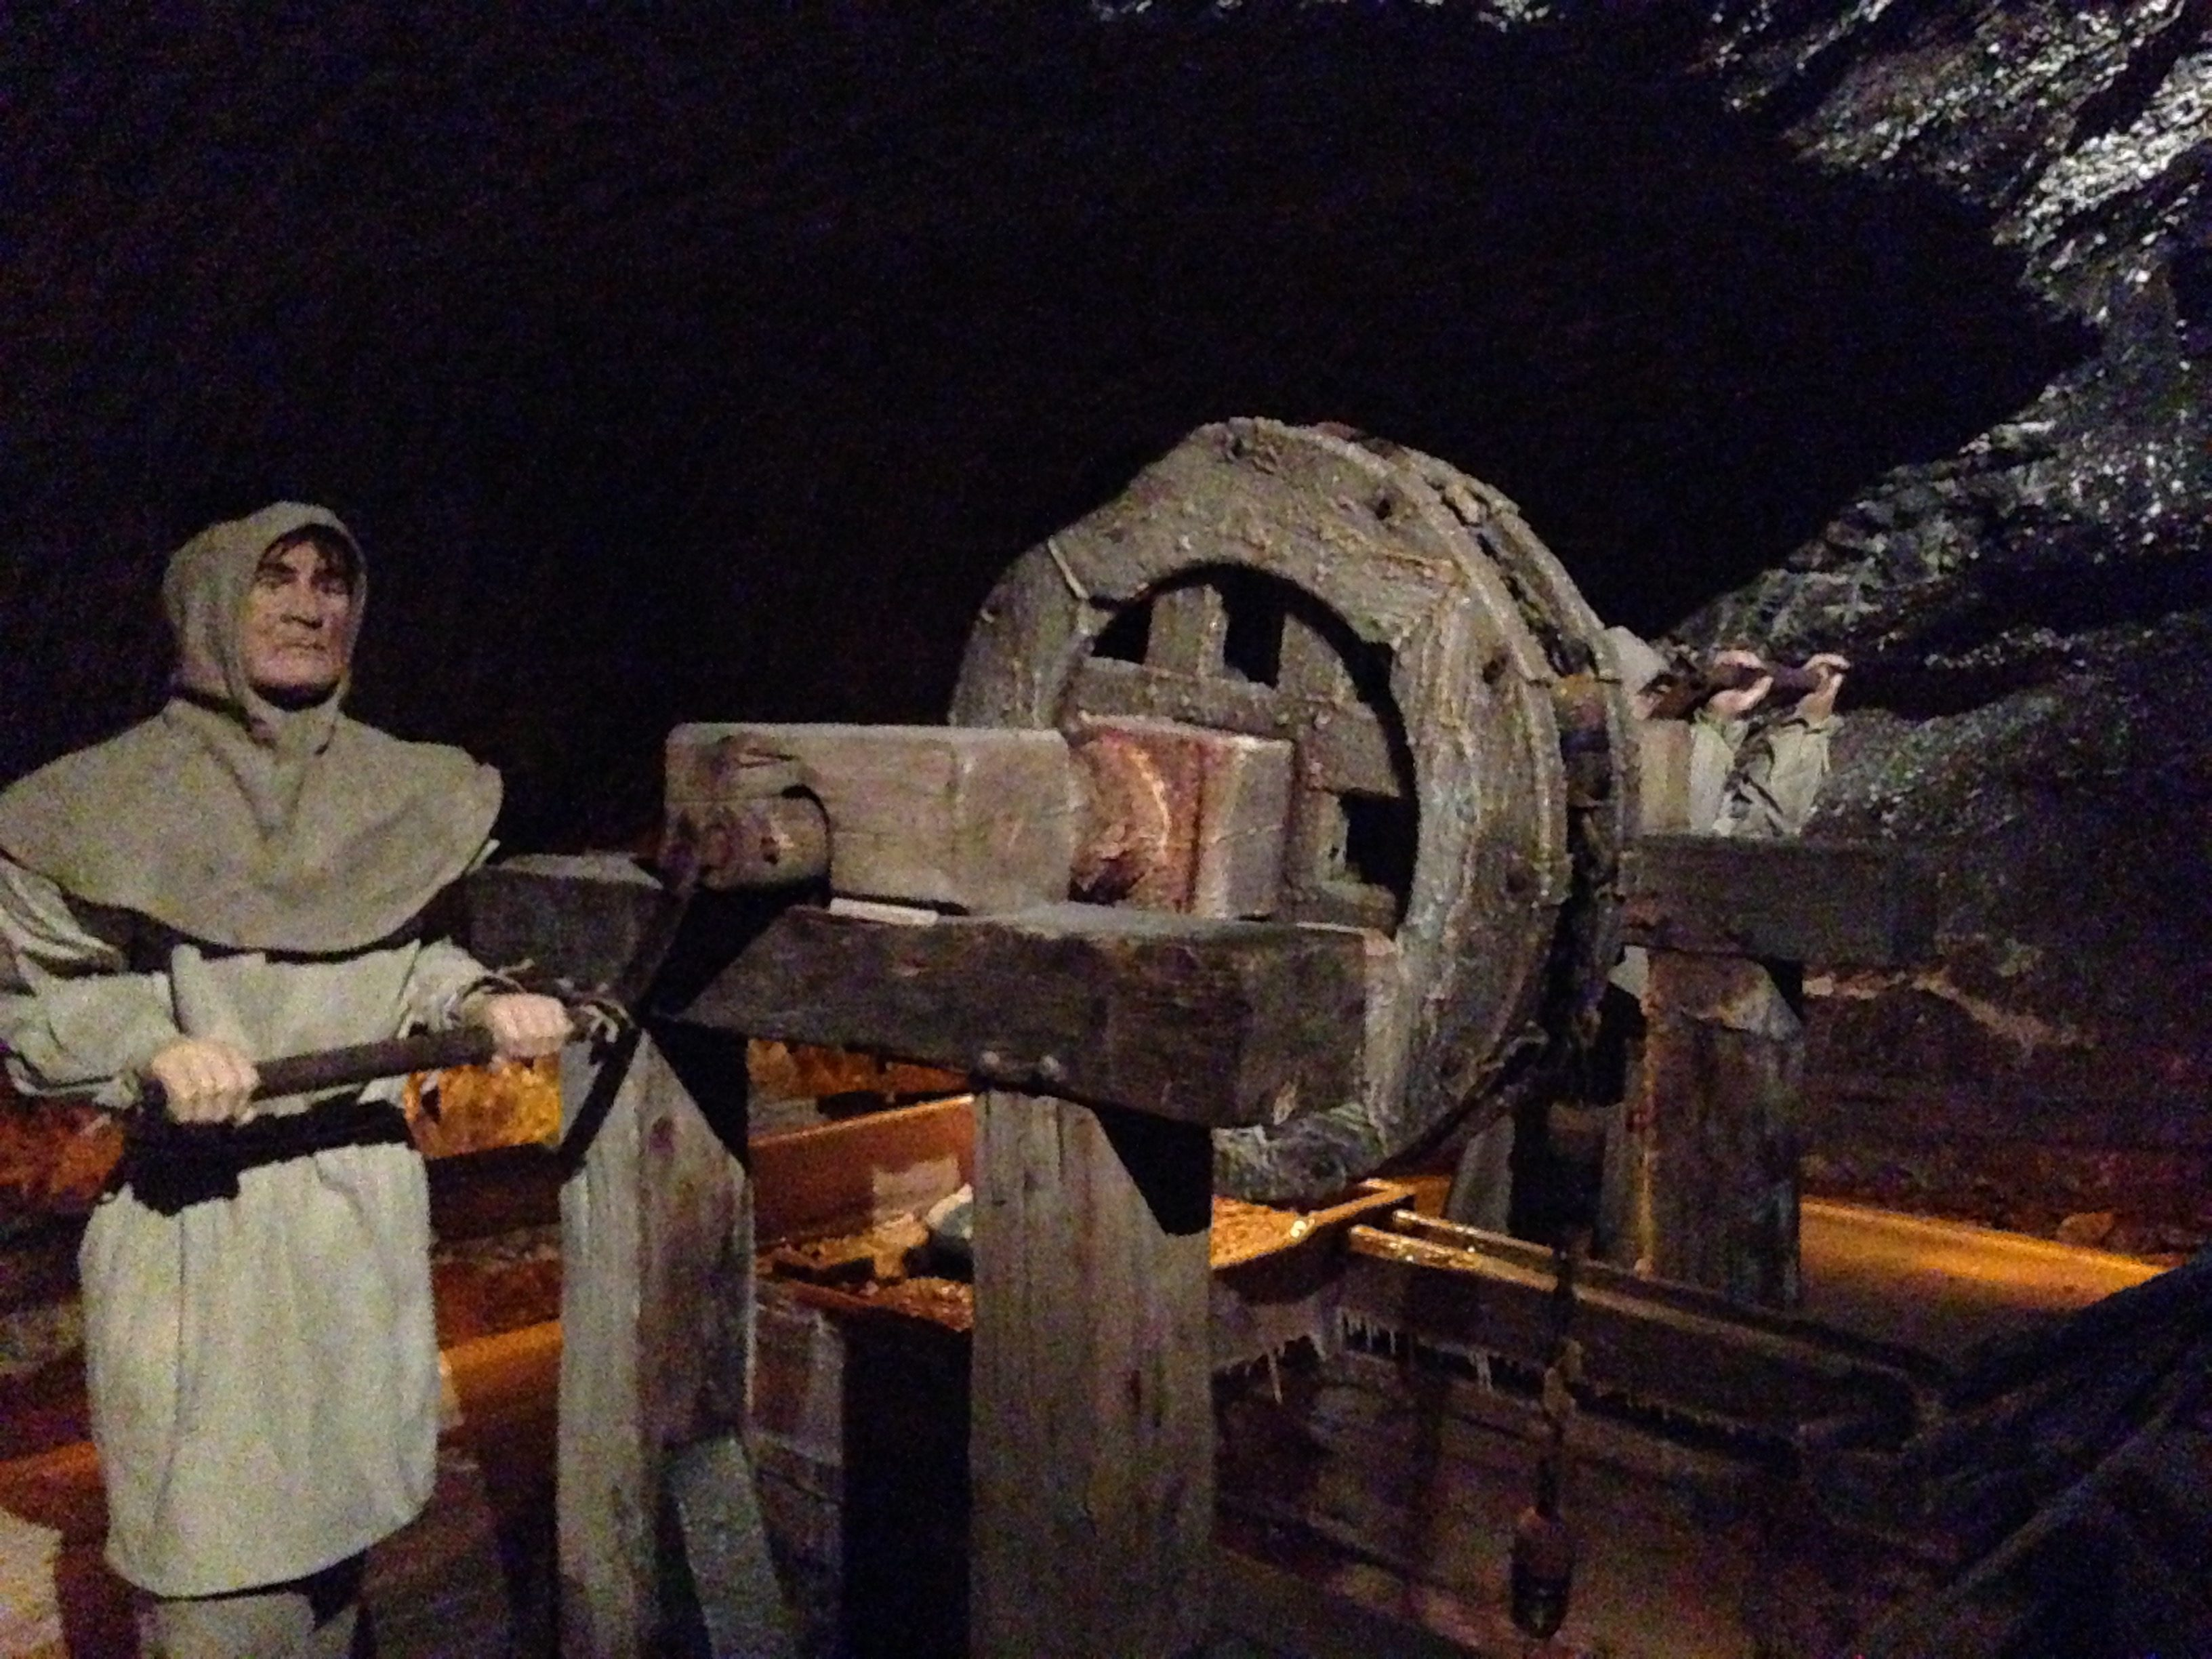 Model statue of a miner turning the wheels in the Wieliczka Salt Mines